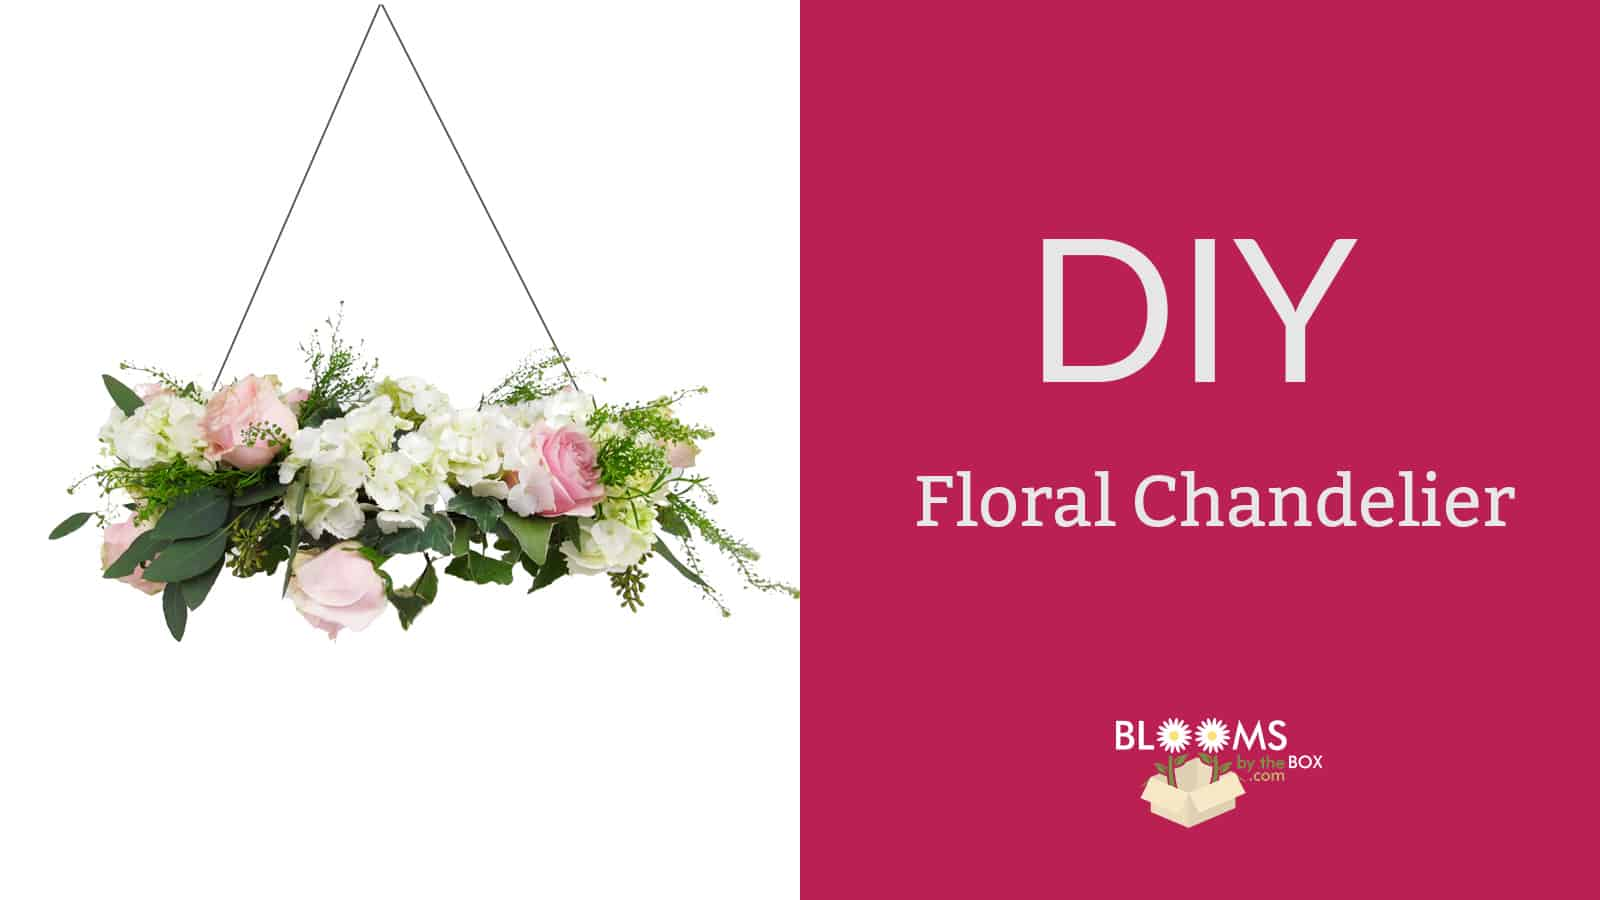 Diy flower chandelier budget friendly beauty arubaitofo Image collections